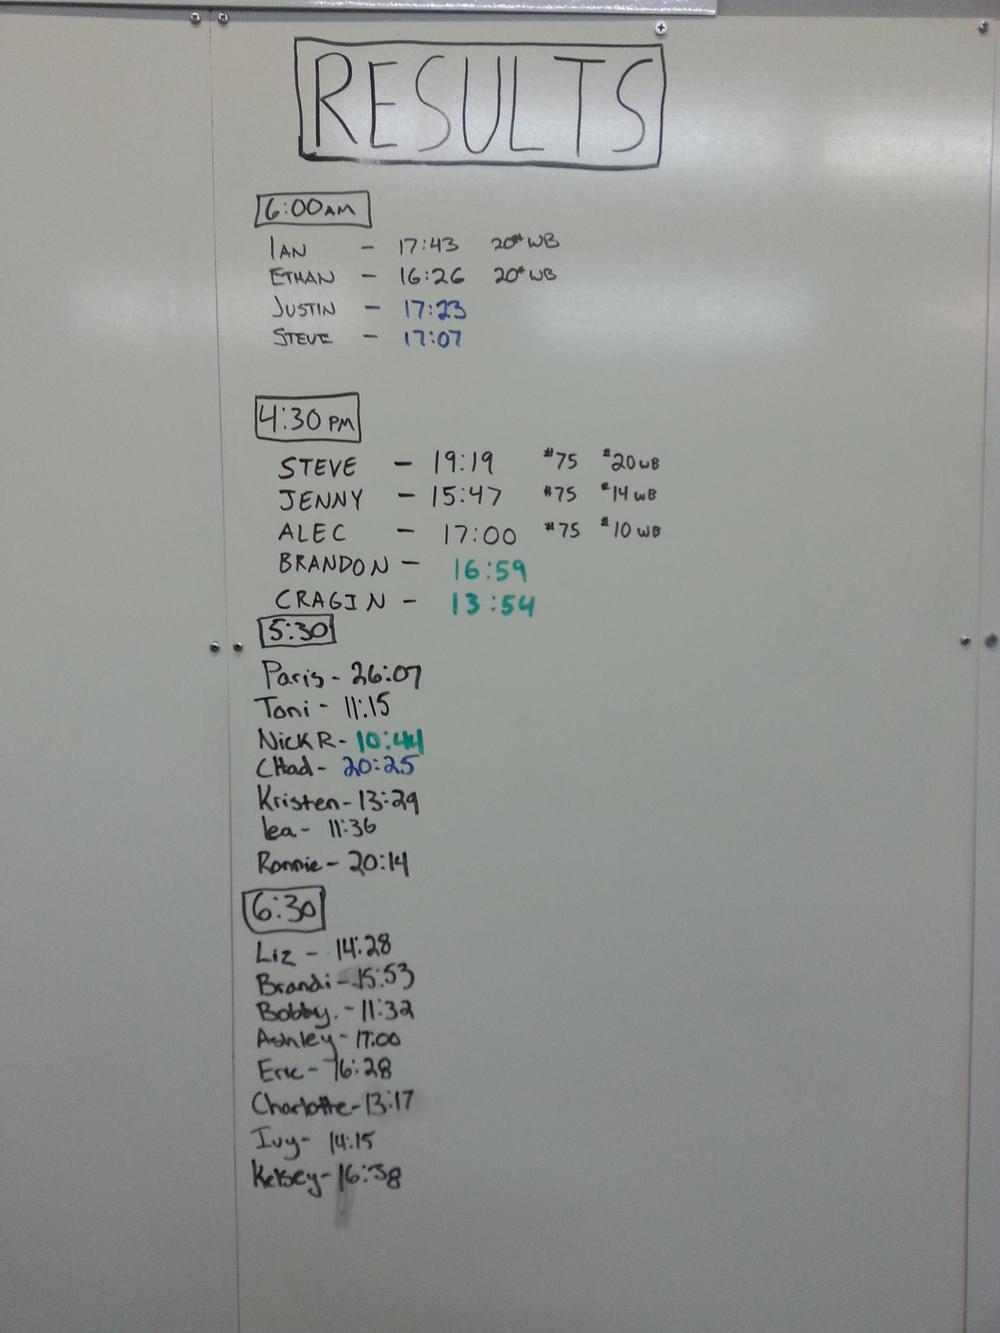 Results from 10/1!